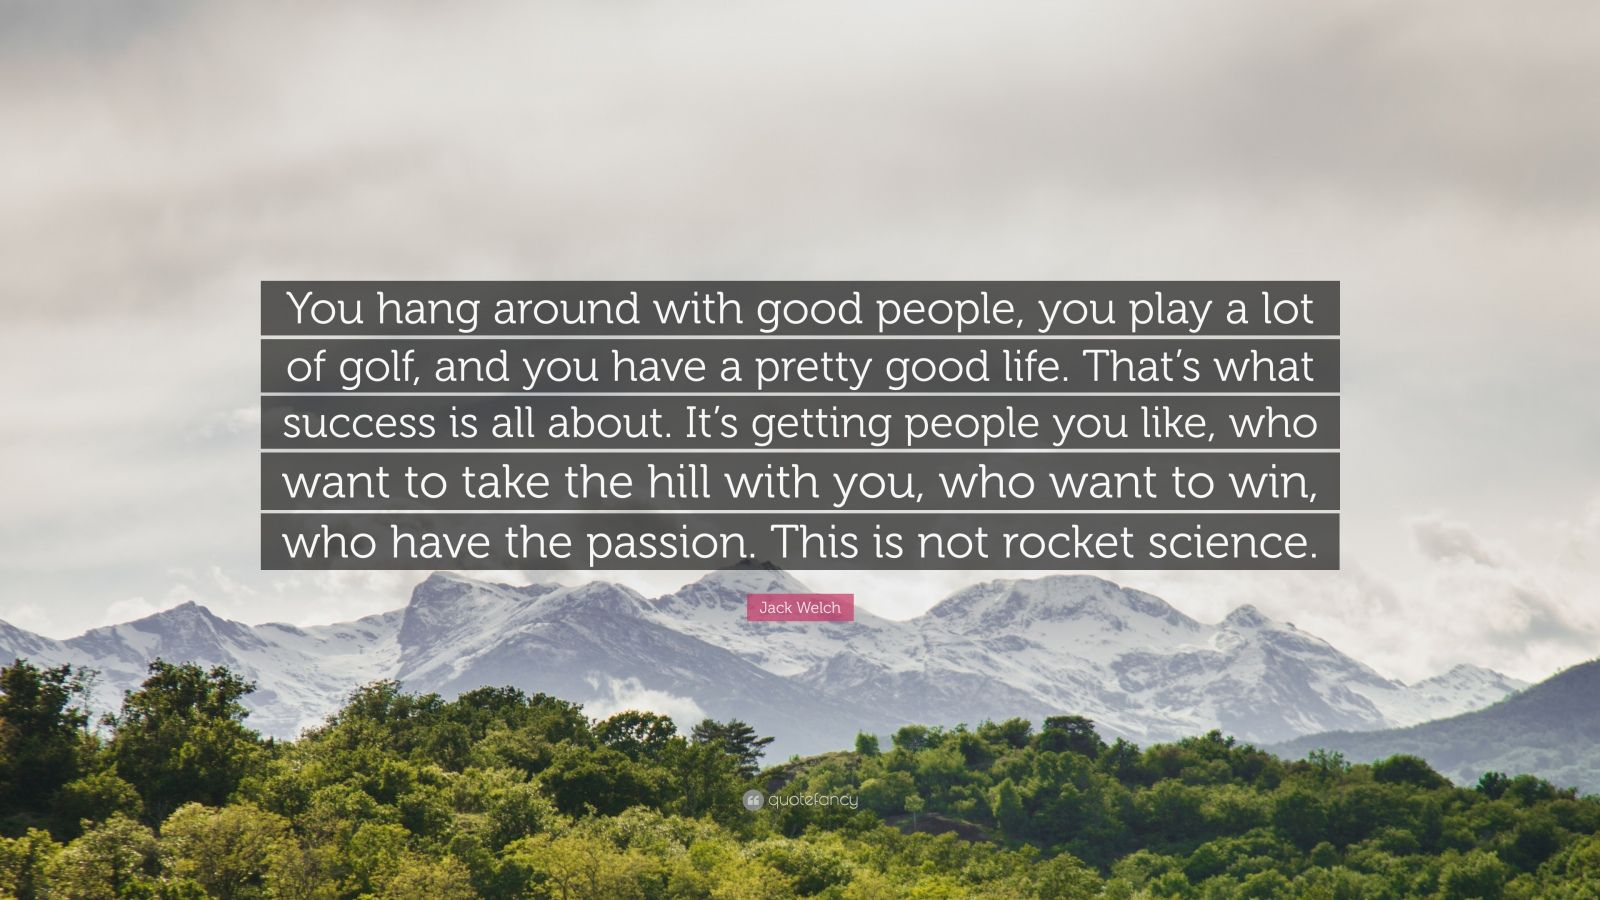 """Jack Welch Quote: """"You hang around with good people, you play a lot of golf, and you have a pretty good life. That's what success is all about. It's getting people you like, who want to take the hill with you, who want to win, who have the passion. This is not rocket science."""""""